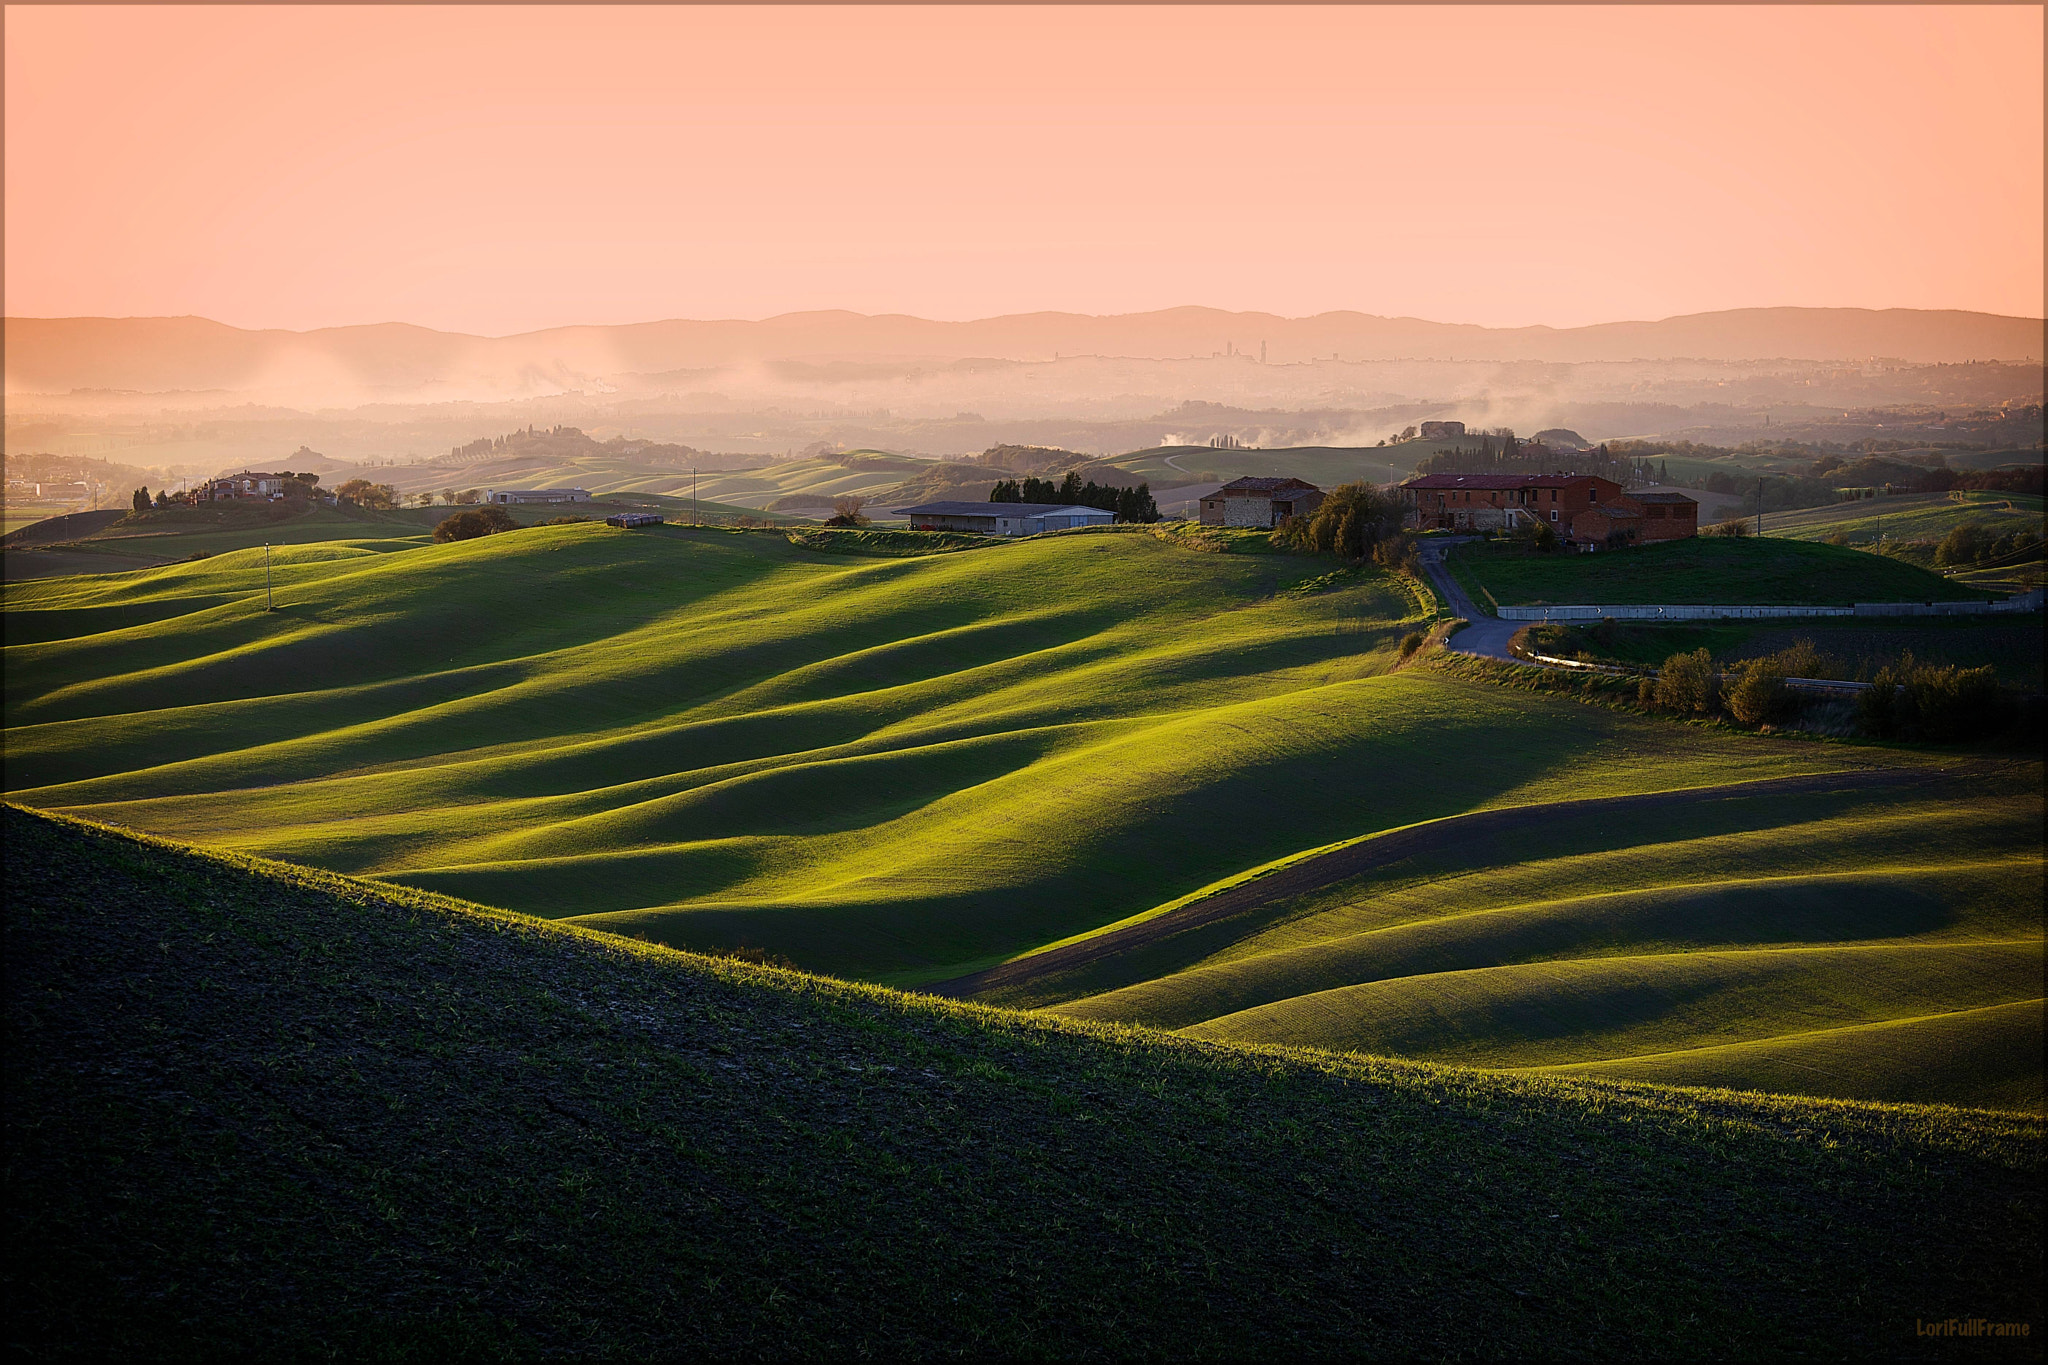 Photograph Mist over the Crete Senesi, towards Siena by Lorenzo ROSIGNOLI on 500px